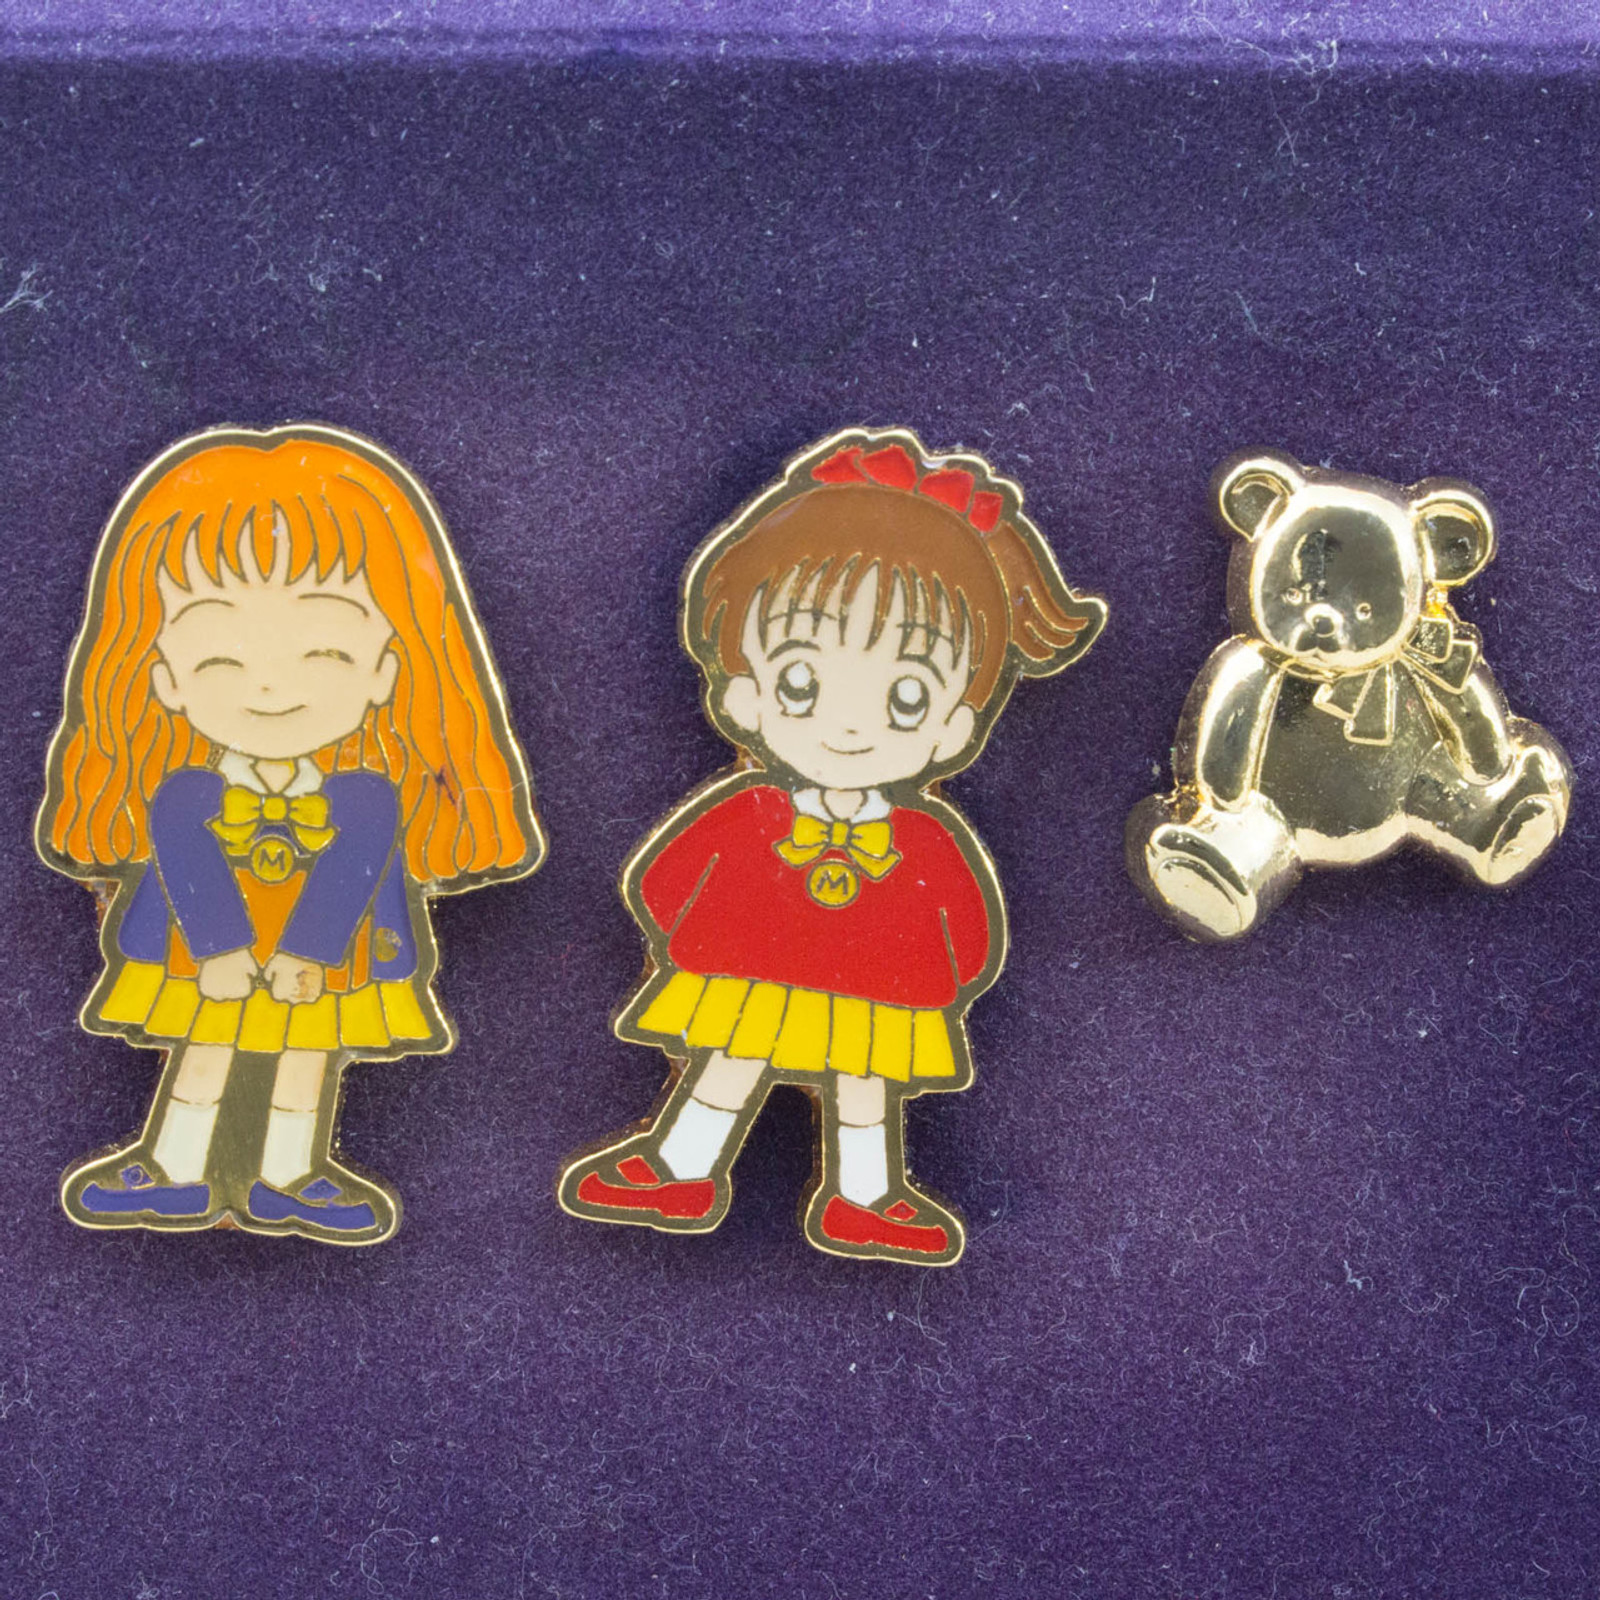 Retro RARE! Marmalade Boy Miki & Meiko Pins 3pc Set BANDAI 1994 JAPAN ANIME